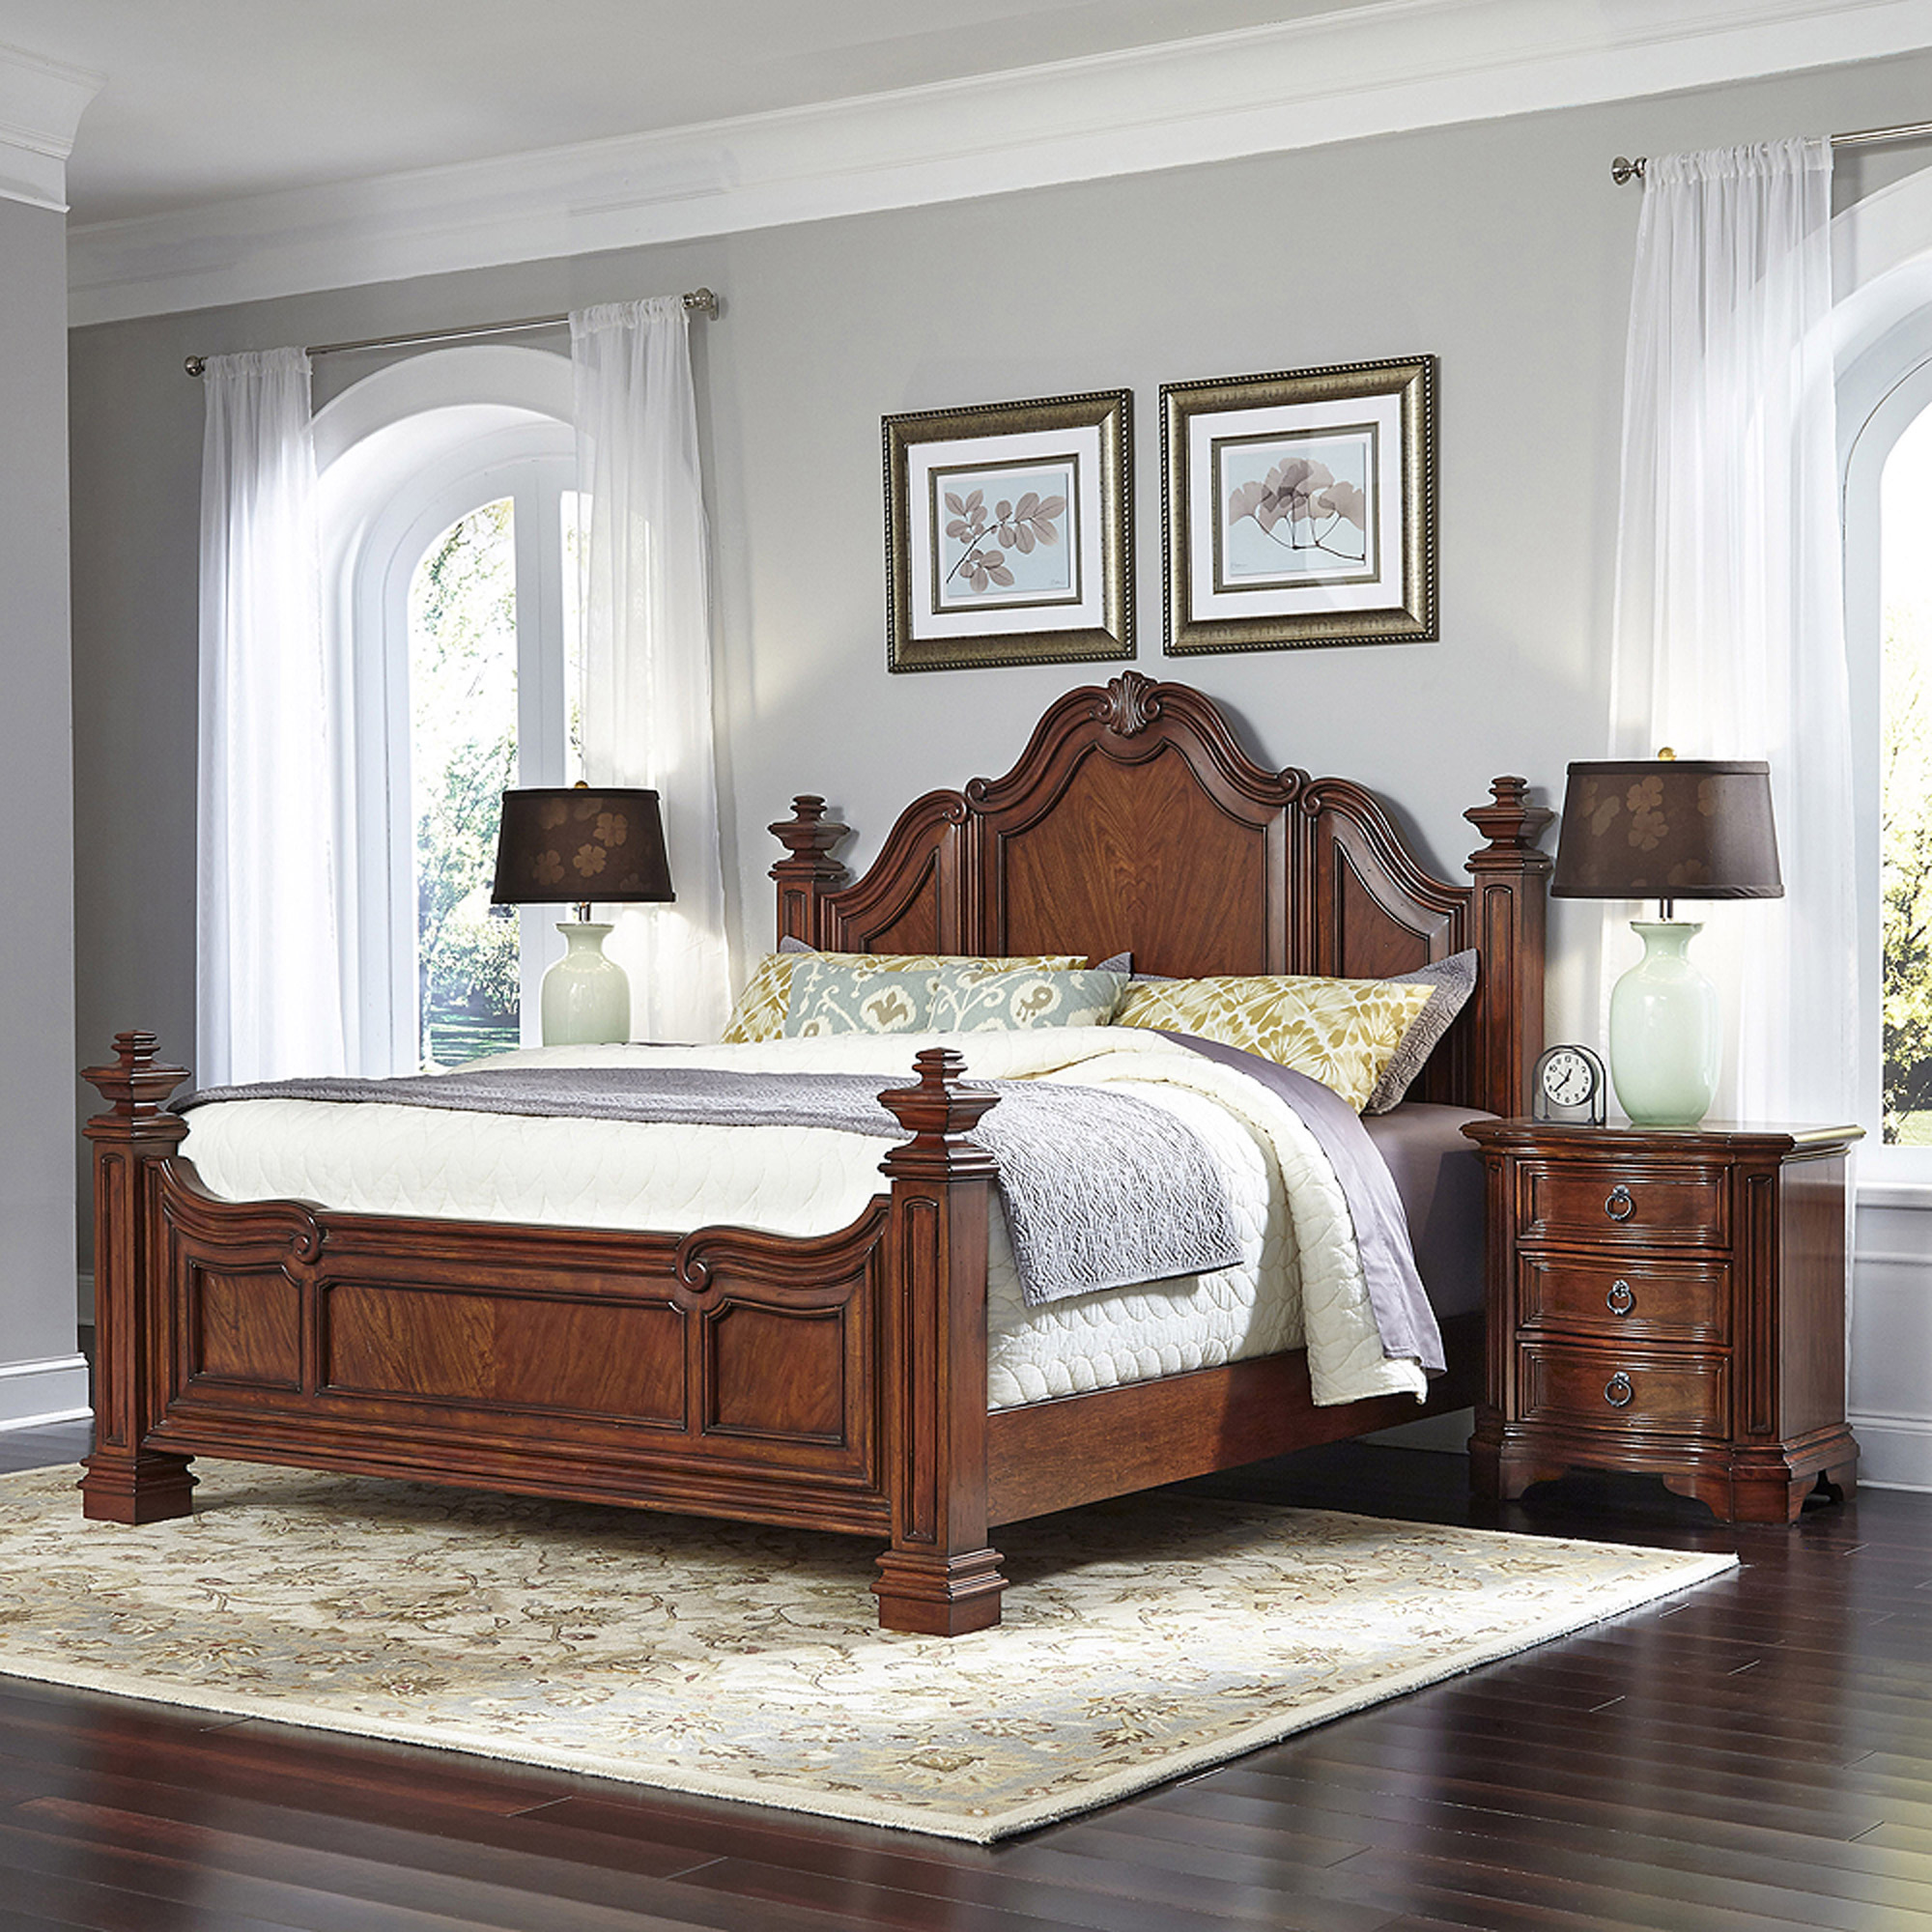 Home Styles Santiago King Bed and 2 Night Stands by Home Styles